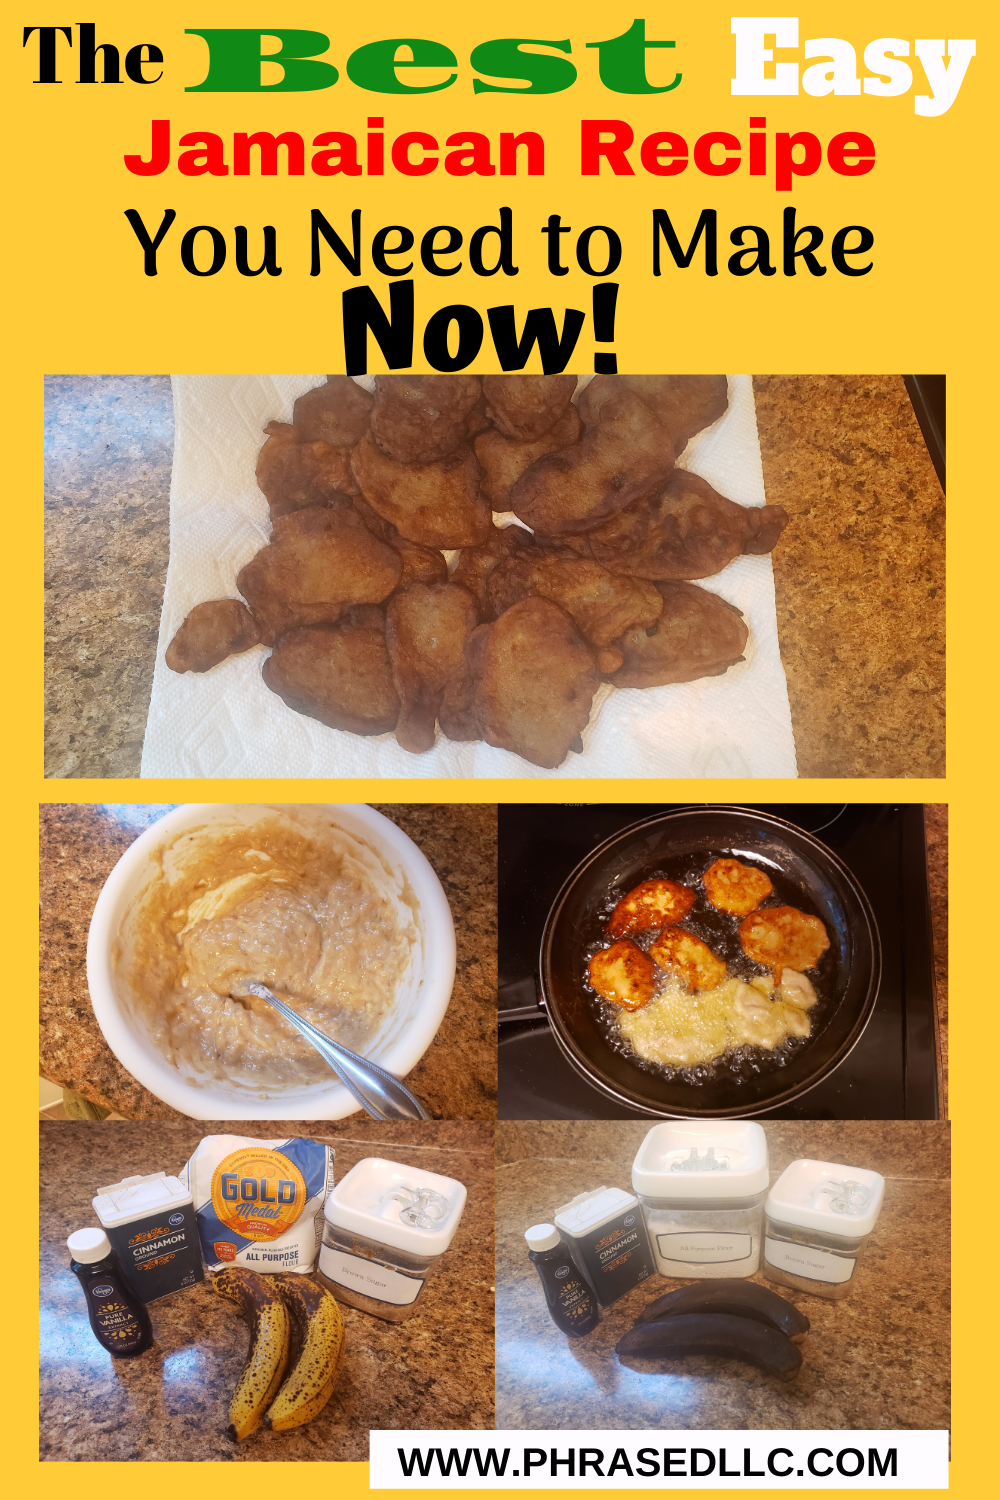 Jamaican banana fritters breakfast that can be made from 5 ingredients you have in your kitchen that is delicious and will help you use over ripe bananas.